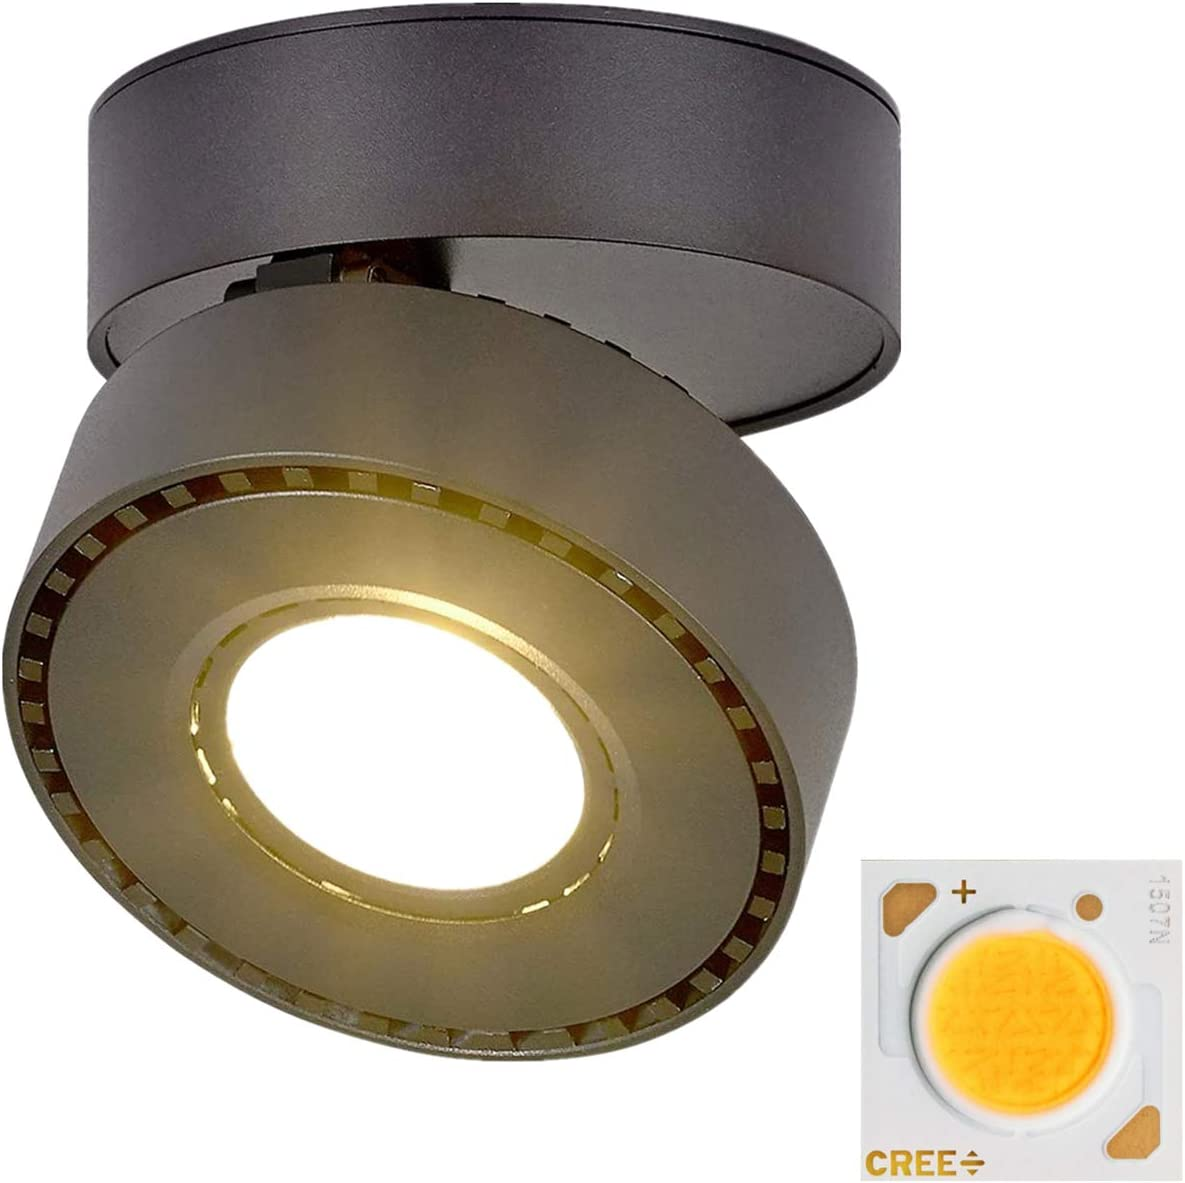 Yodaba Indoor Ceiling Spotlight 360°Adjustable,Uses 12W CREE CXA1507 LED Surface Mounted COB Lighting/3000K Warm White Light Ceiling Downlight/Aluminum Wall Swivel Lamp-for Home Gallery Display(Black)